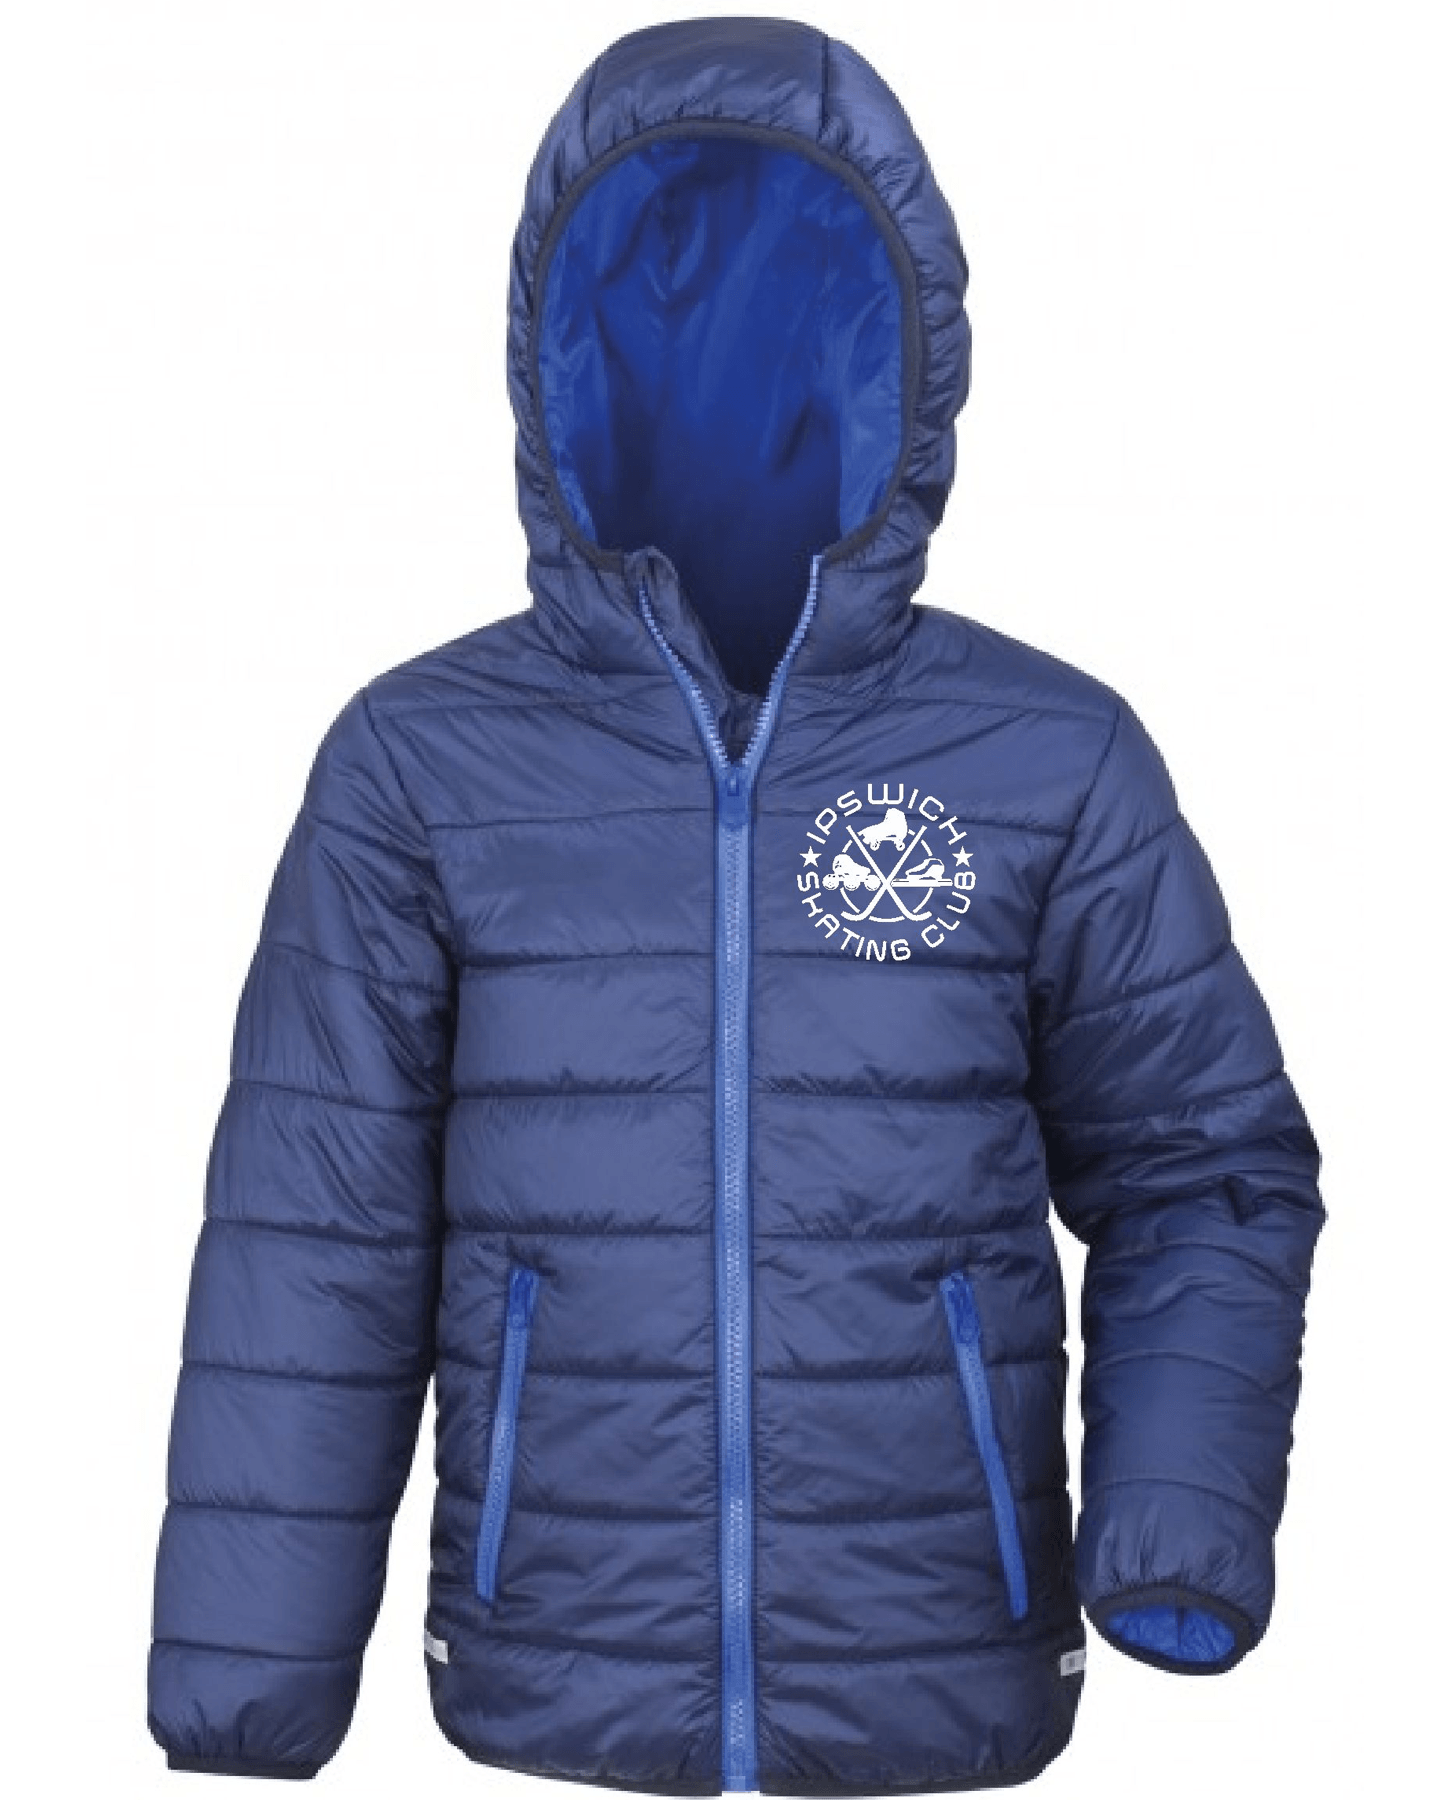 ISC – Padded Jacket (Kids)